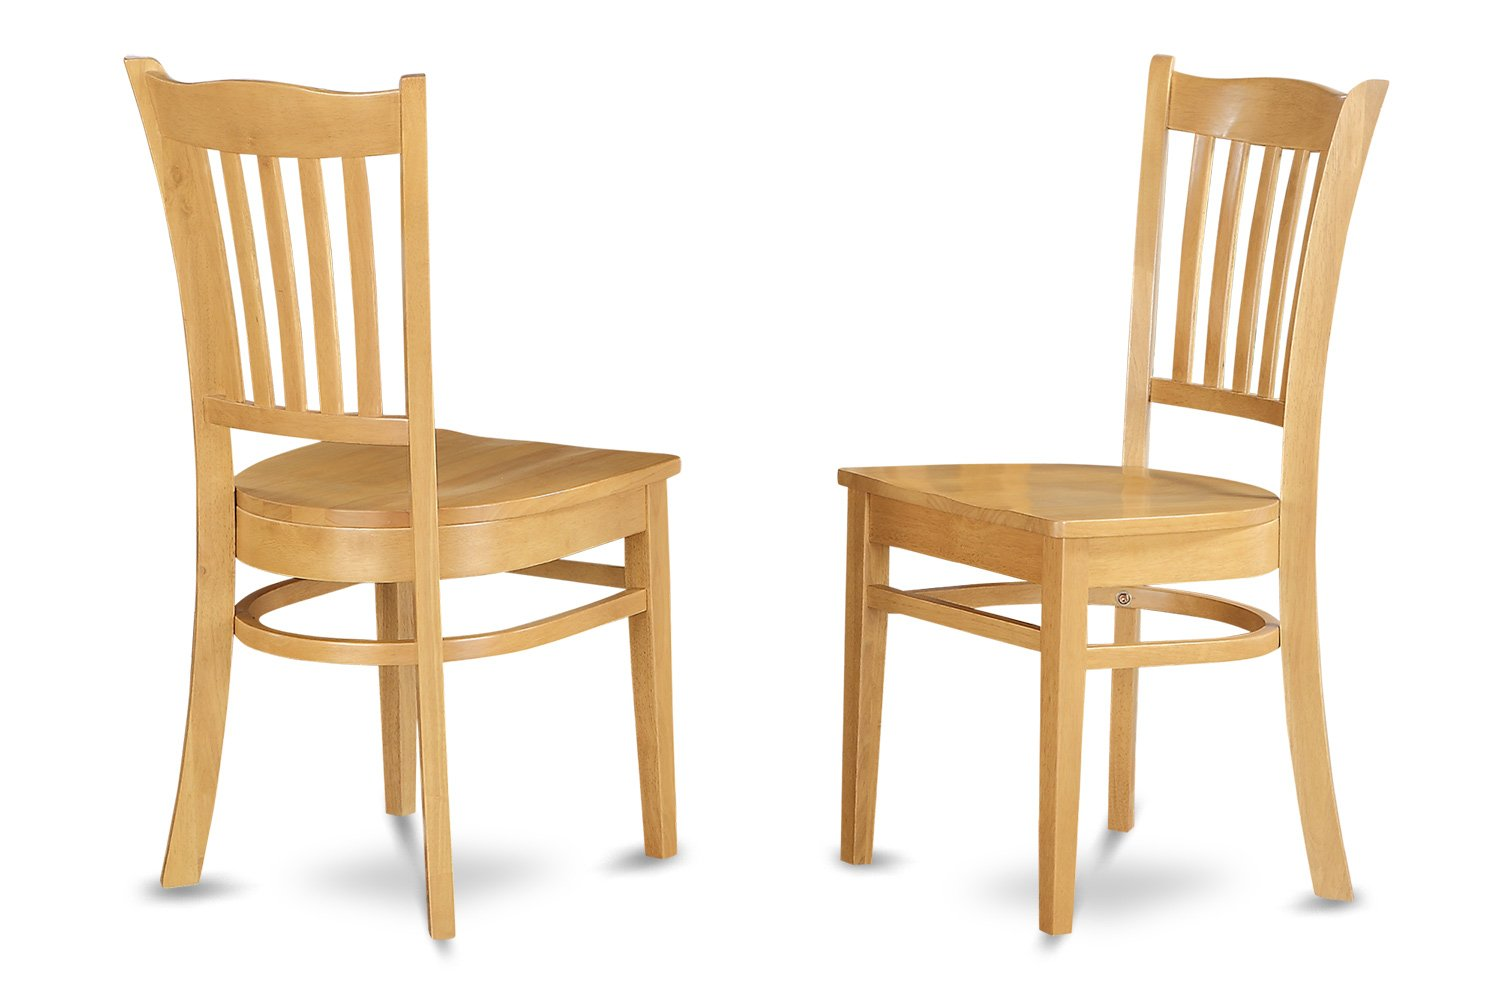 Amazon.com: East West Furniture GRC-WHI-W Dining Chair Set with Wood ...